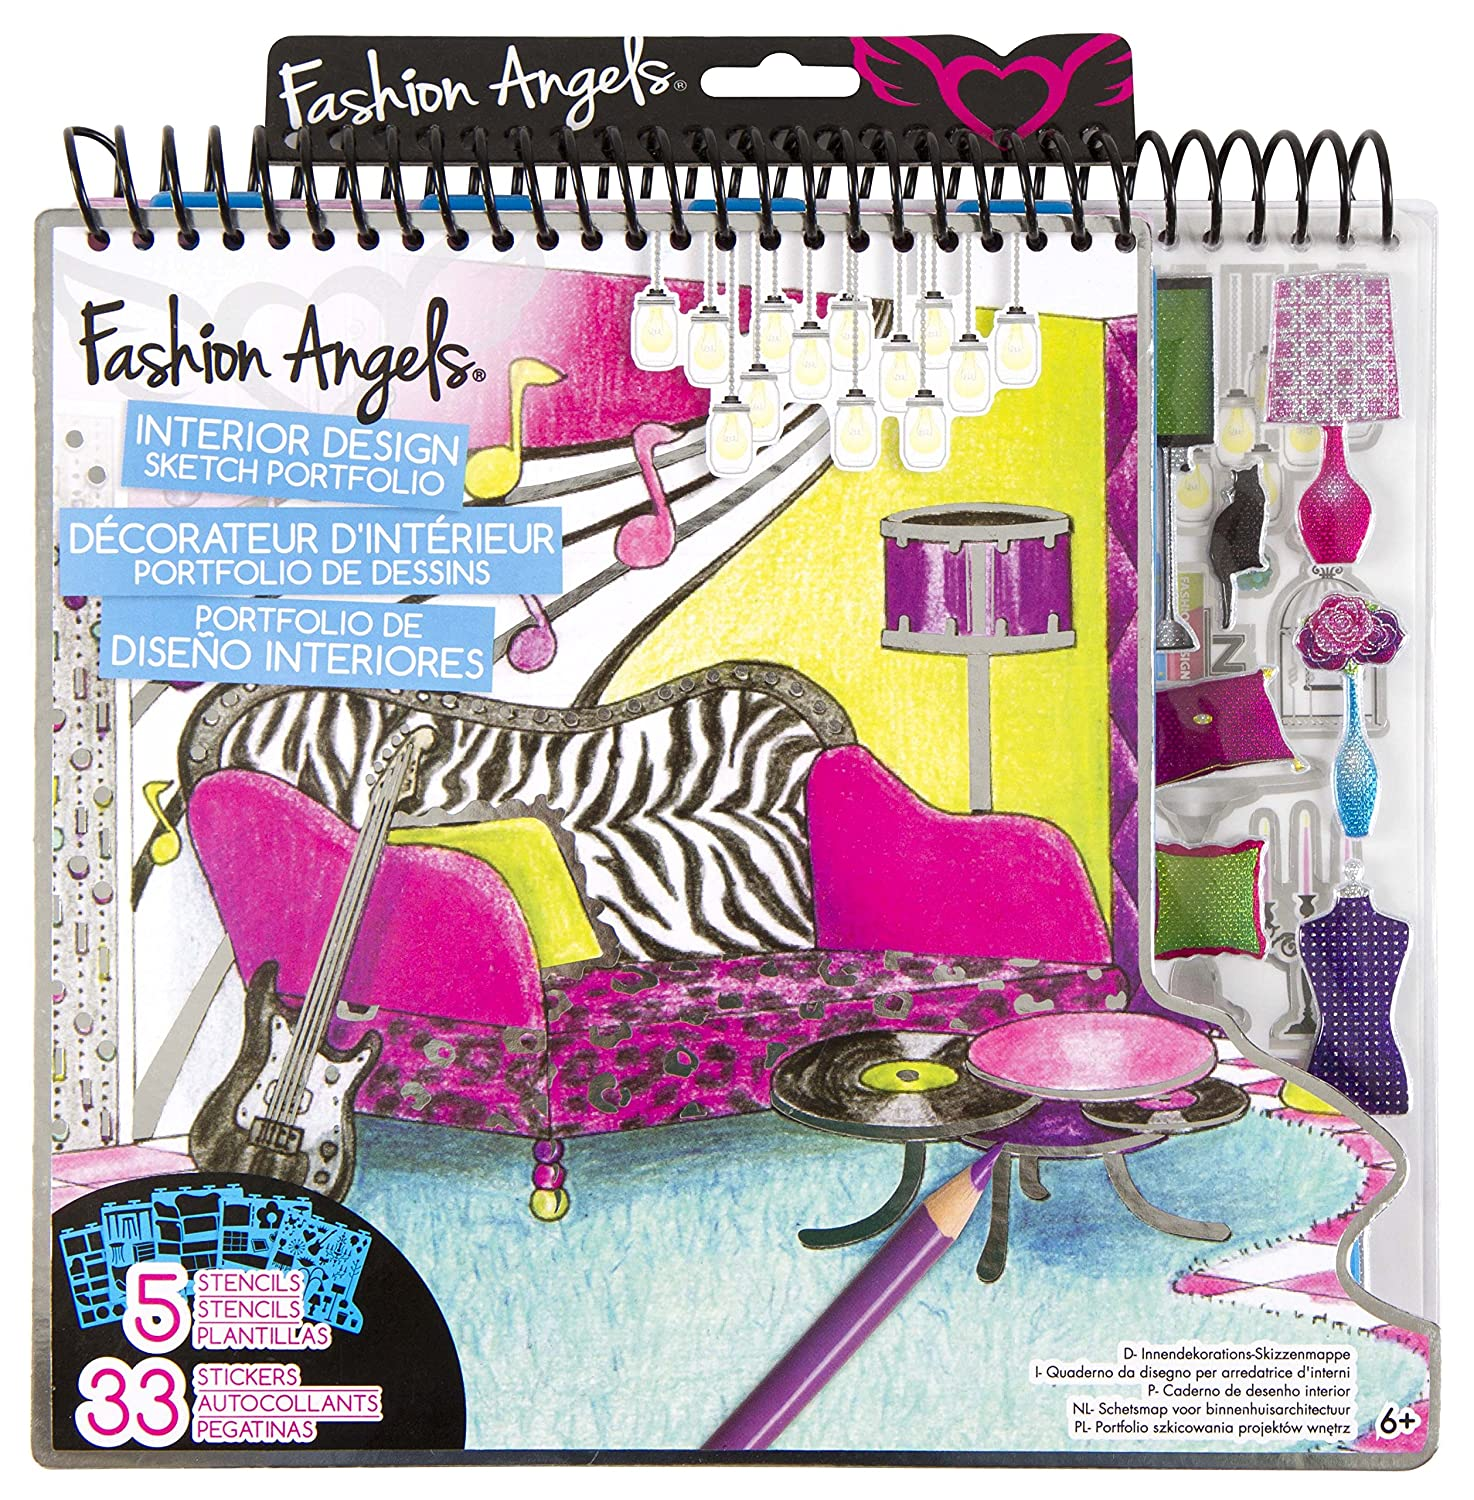 Fashion Angels Interior Design Sketch Portfolio